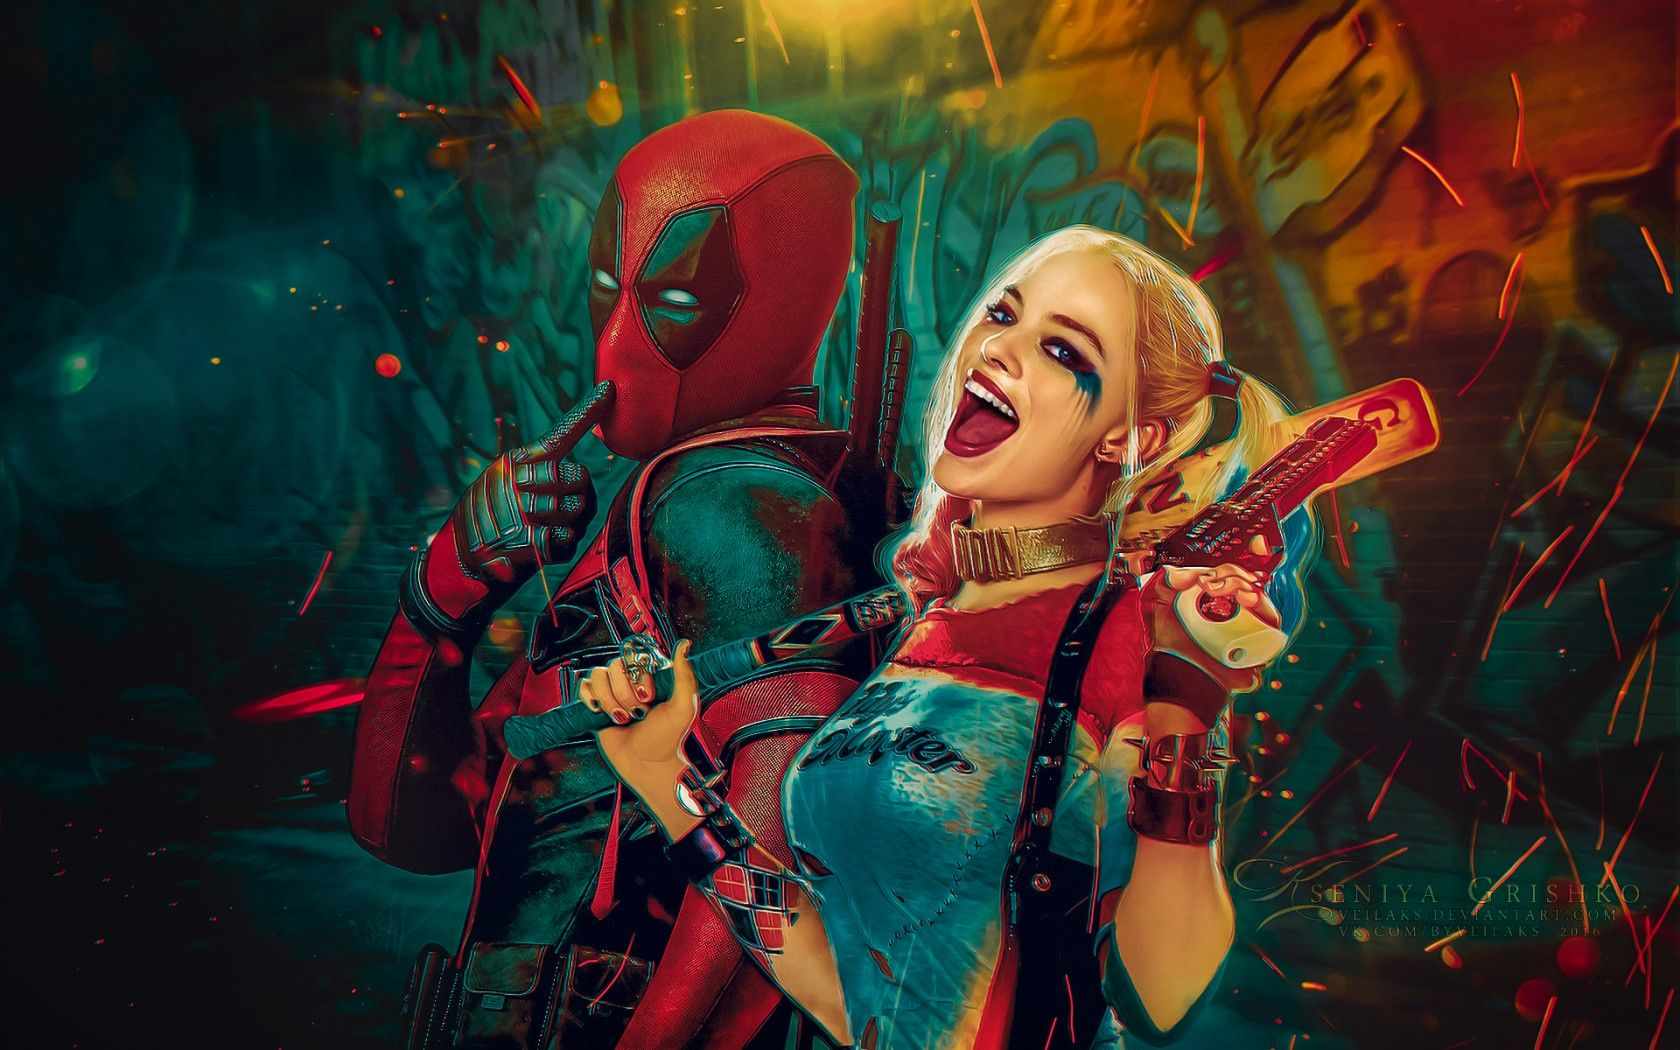 1680x1050 Harley Quinn Wallpapers HD Backgrounds, Images, Pics, Photos Free ...